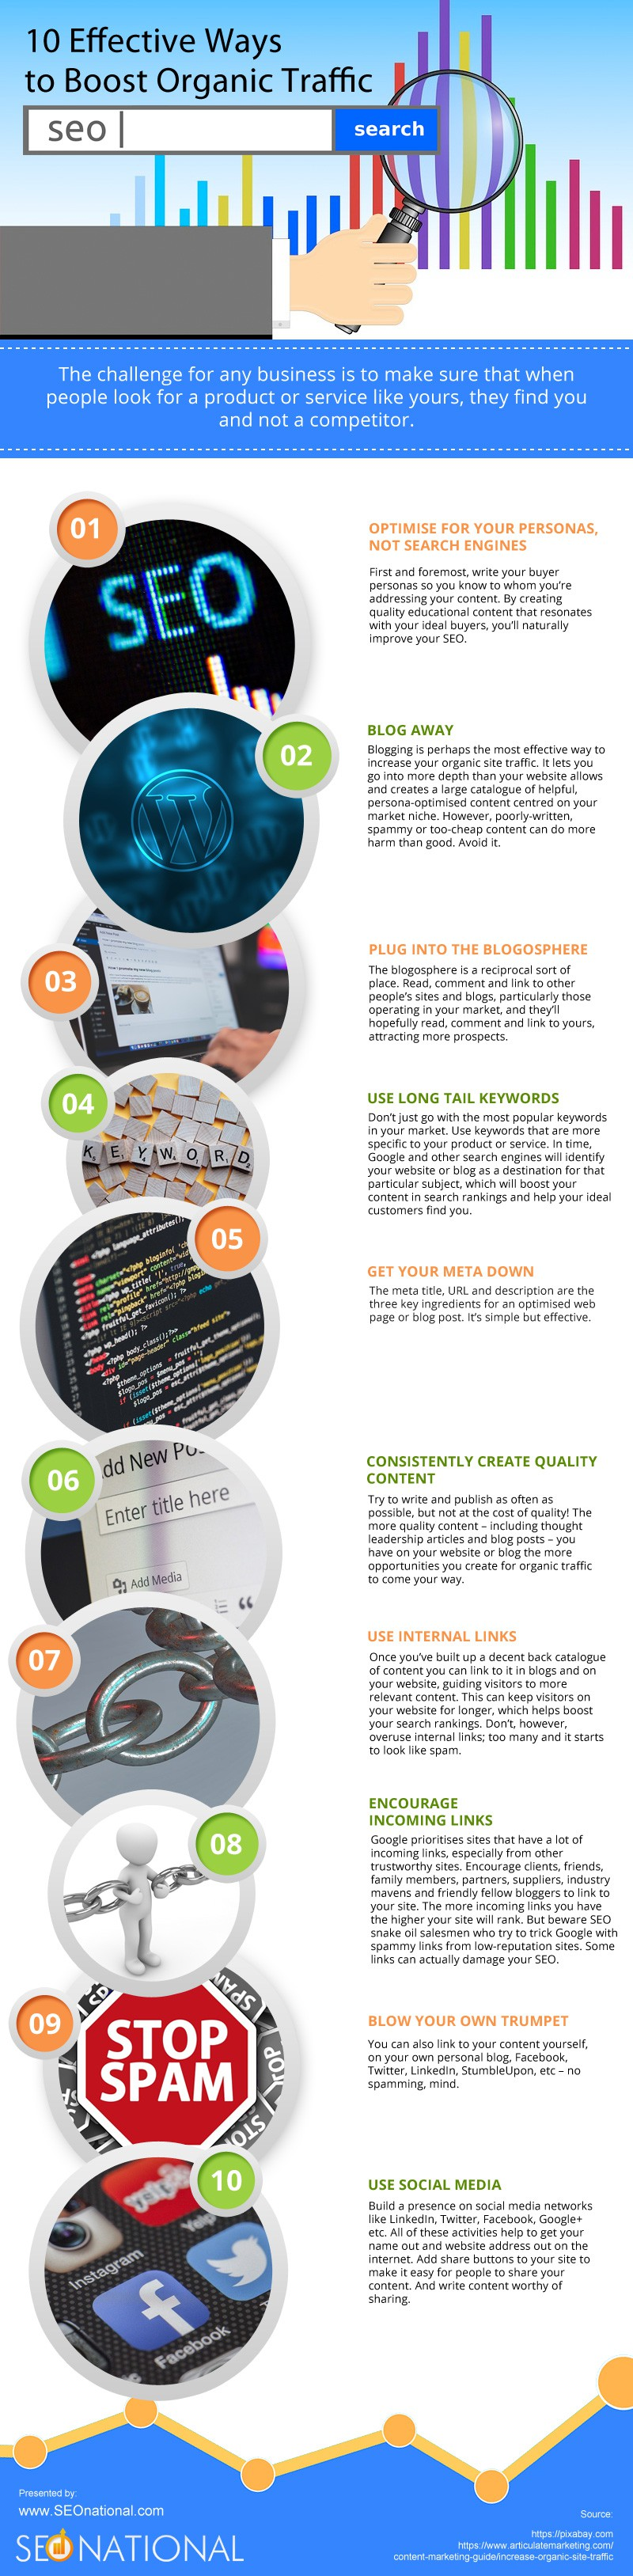 10 Effective Ways to Boost Organic Traffic [infographic]